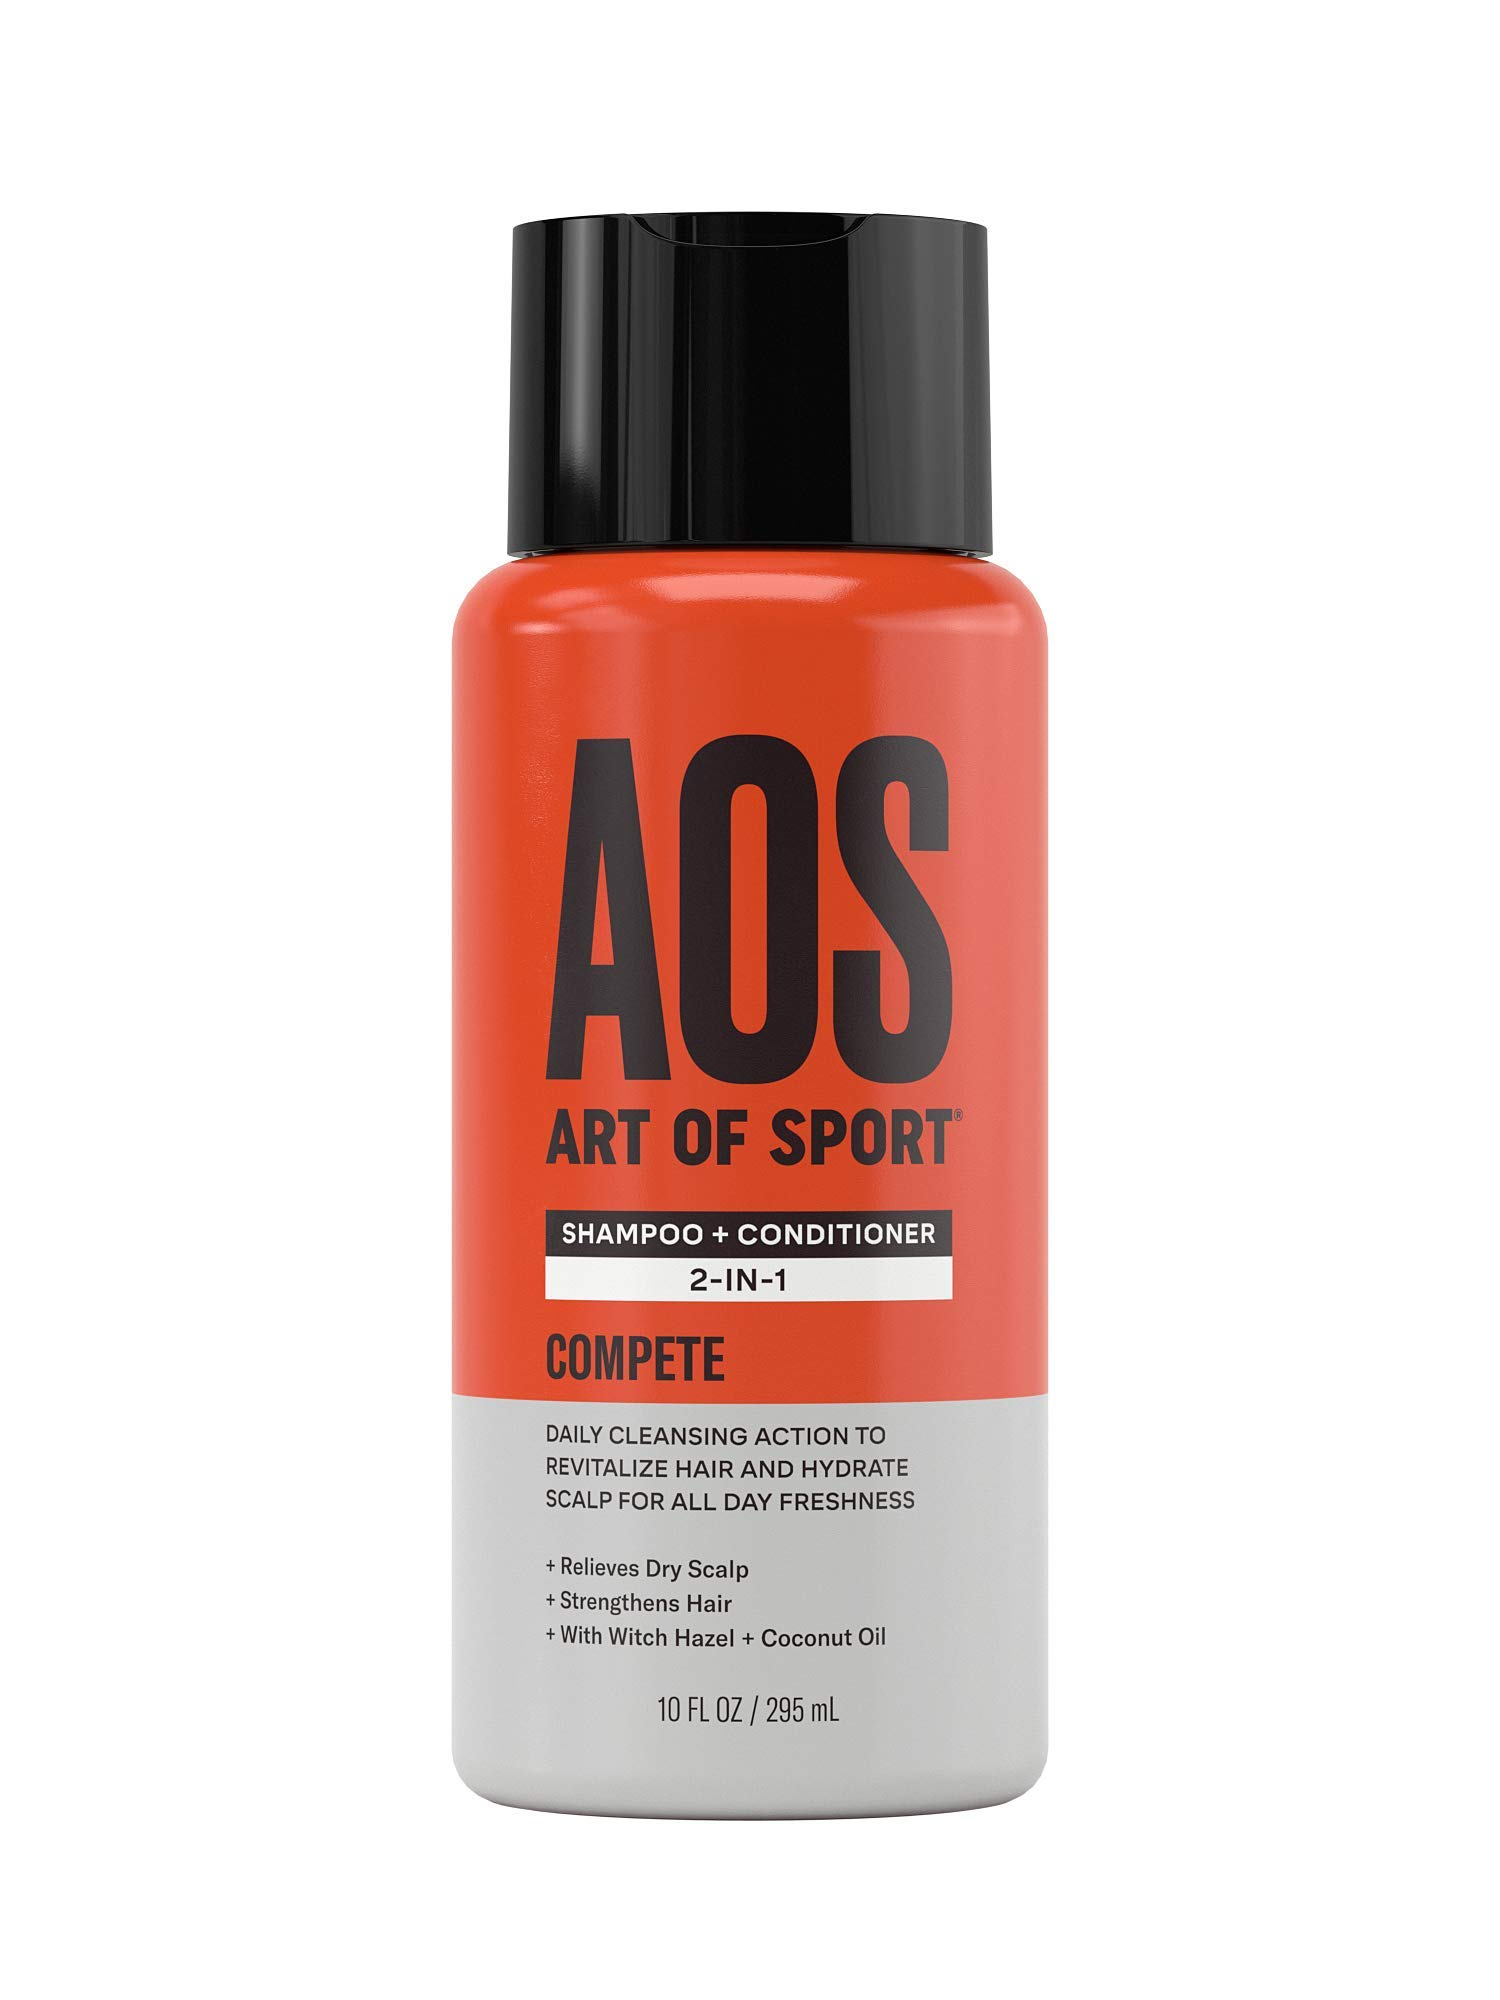 Art of Sport Sulfate Free Shampoo and Conditioner, Compete Scent, Men's Shampoo for Dry Scalp, Hair Strengthening with Hydrating Coconut Oil, For all Hair Types, 10 oz